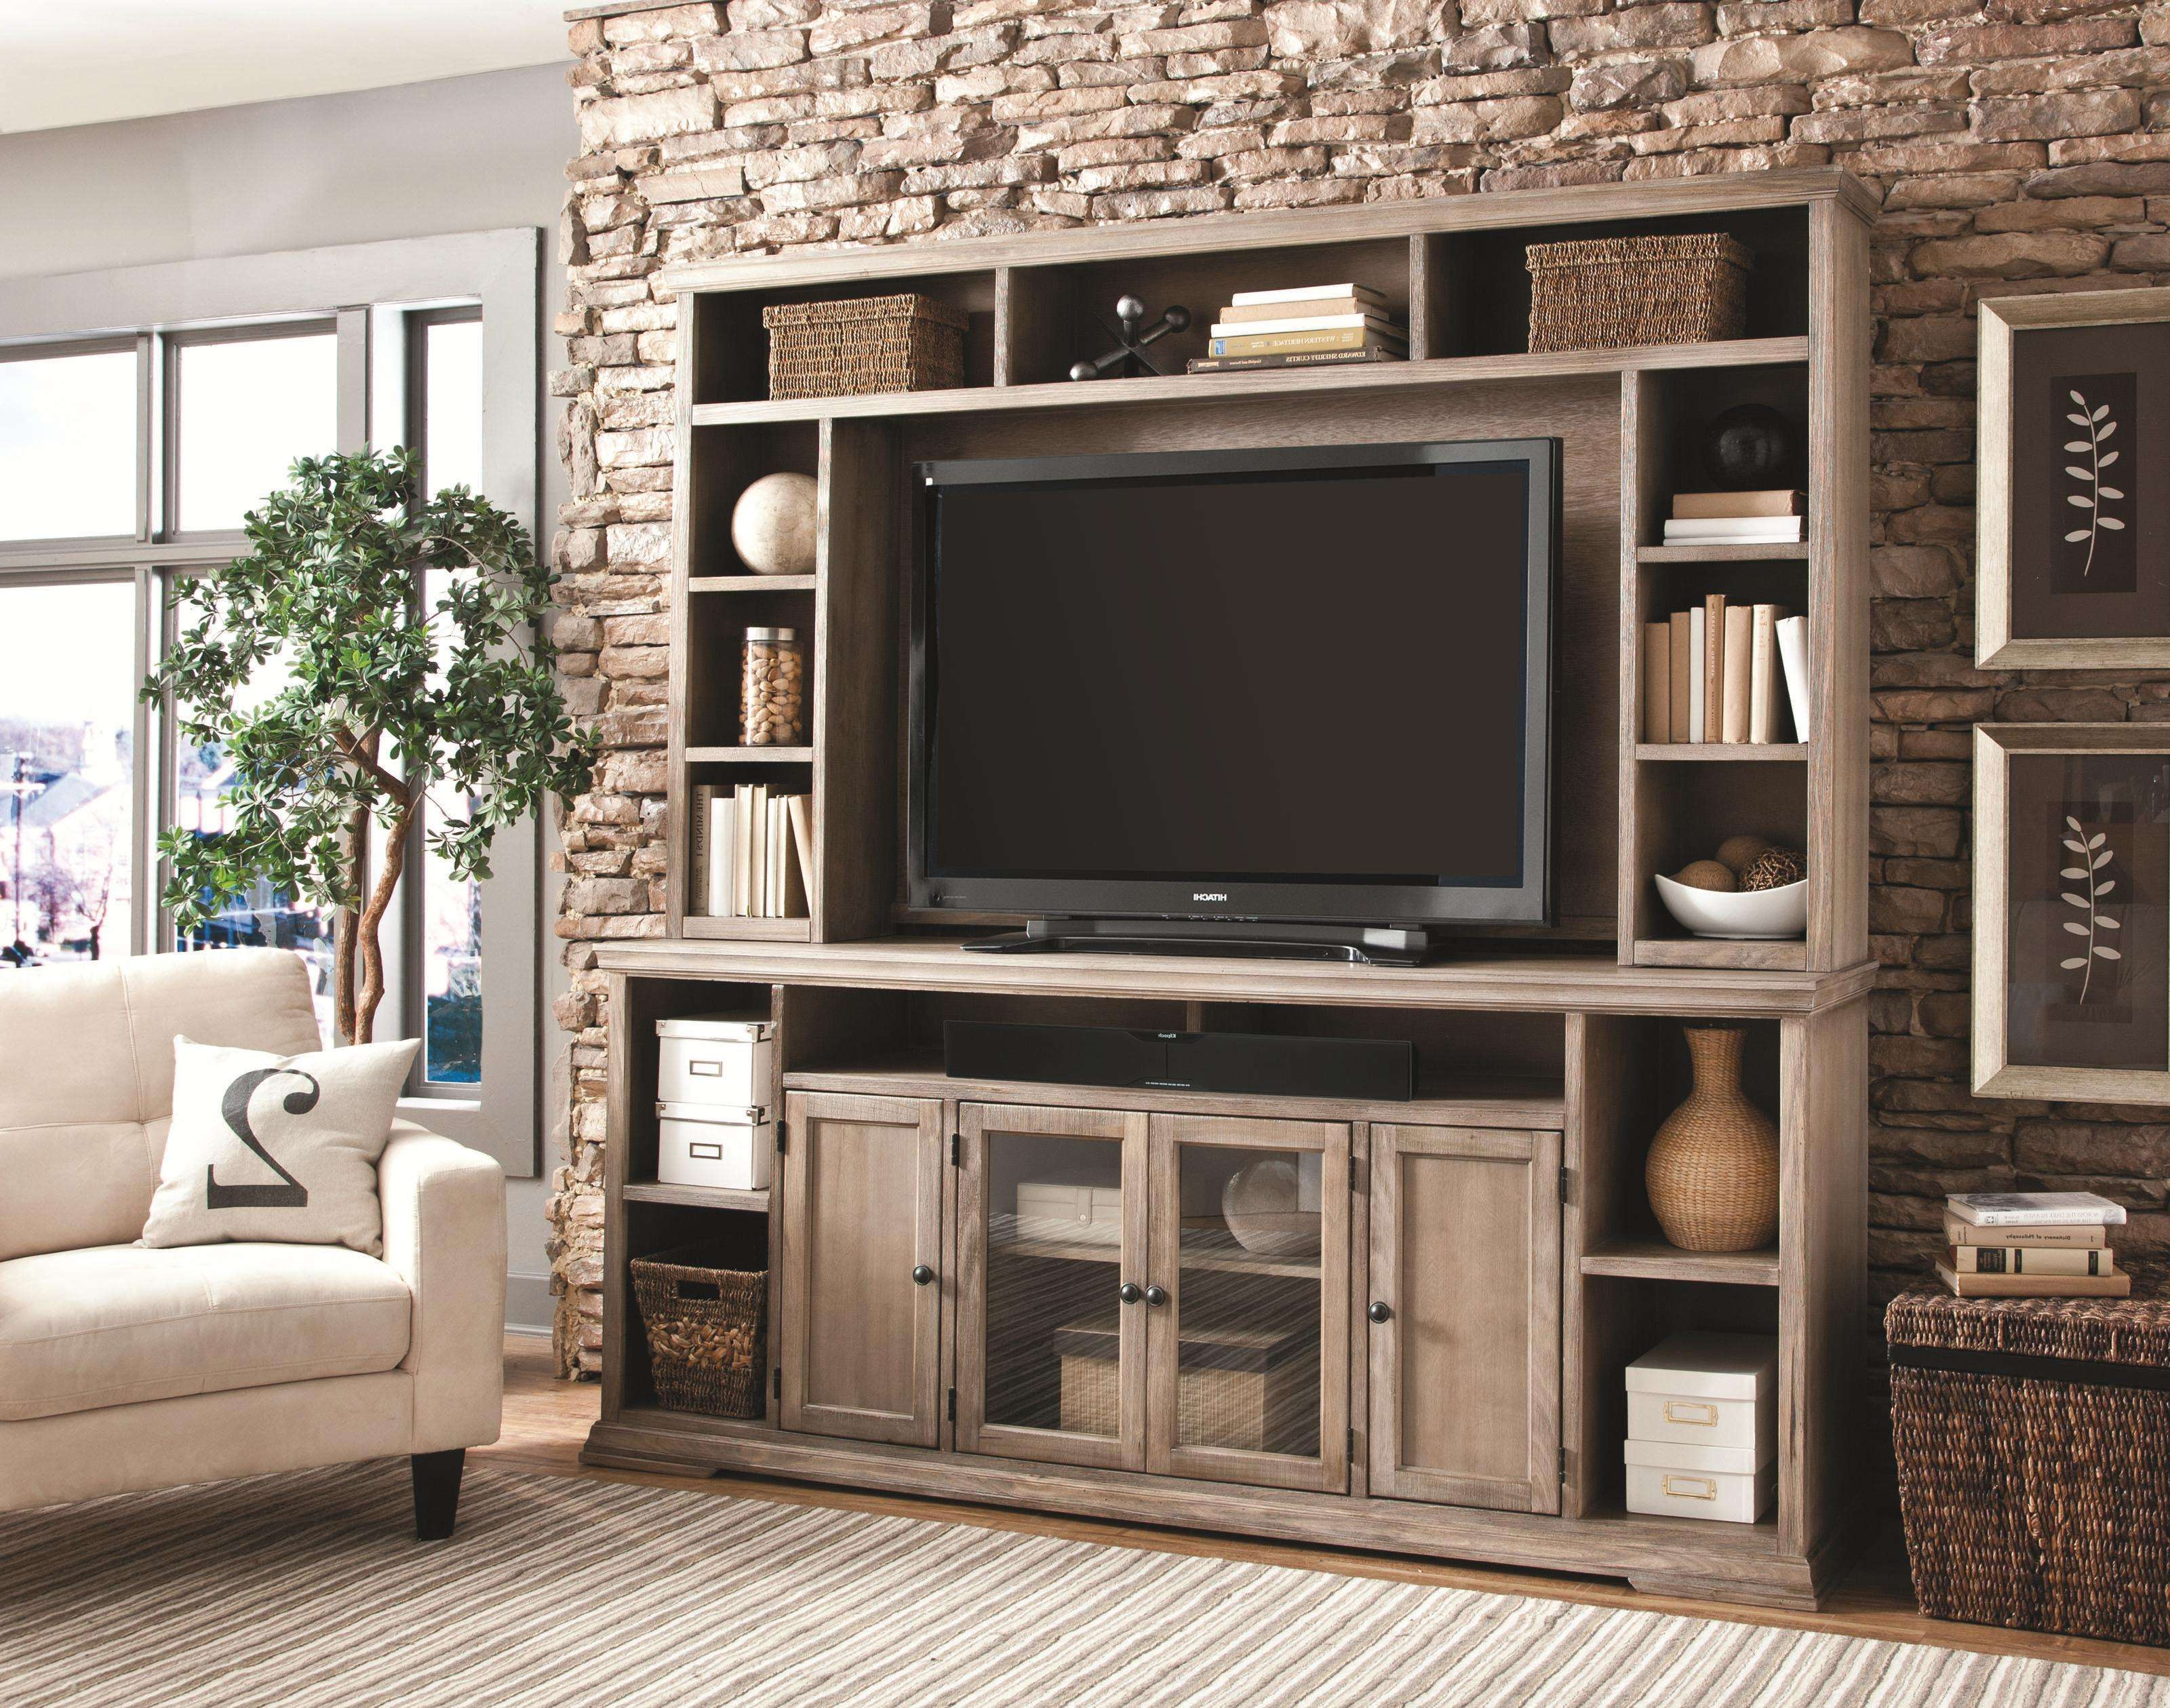 Alluring Custom Made Shabby Cottage Tv Cabinet For Wrap Around Throughout Full Wall Tv Cabinets (View 1 of 20)